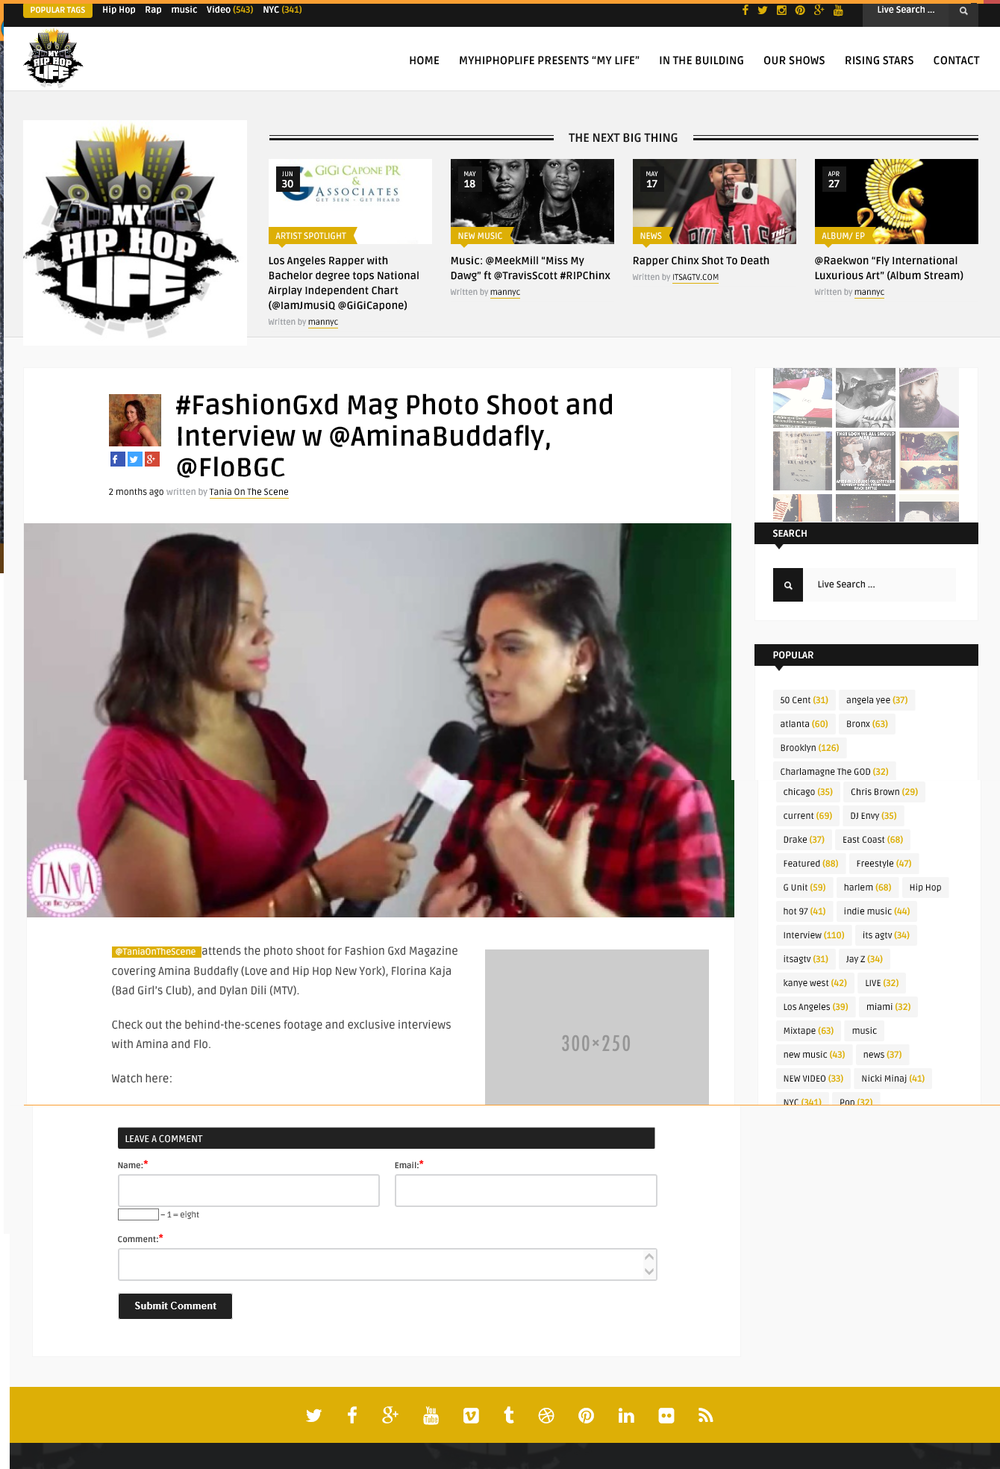 Fashion Gxd Magazine Covered on MyHiphoplife.com By Tania on The Scene